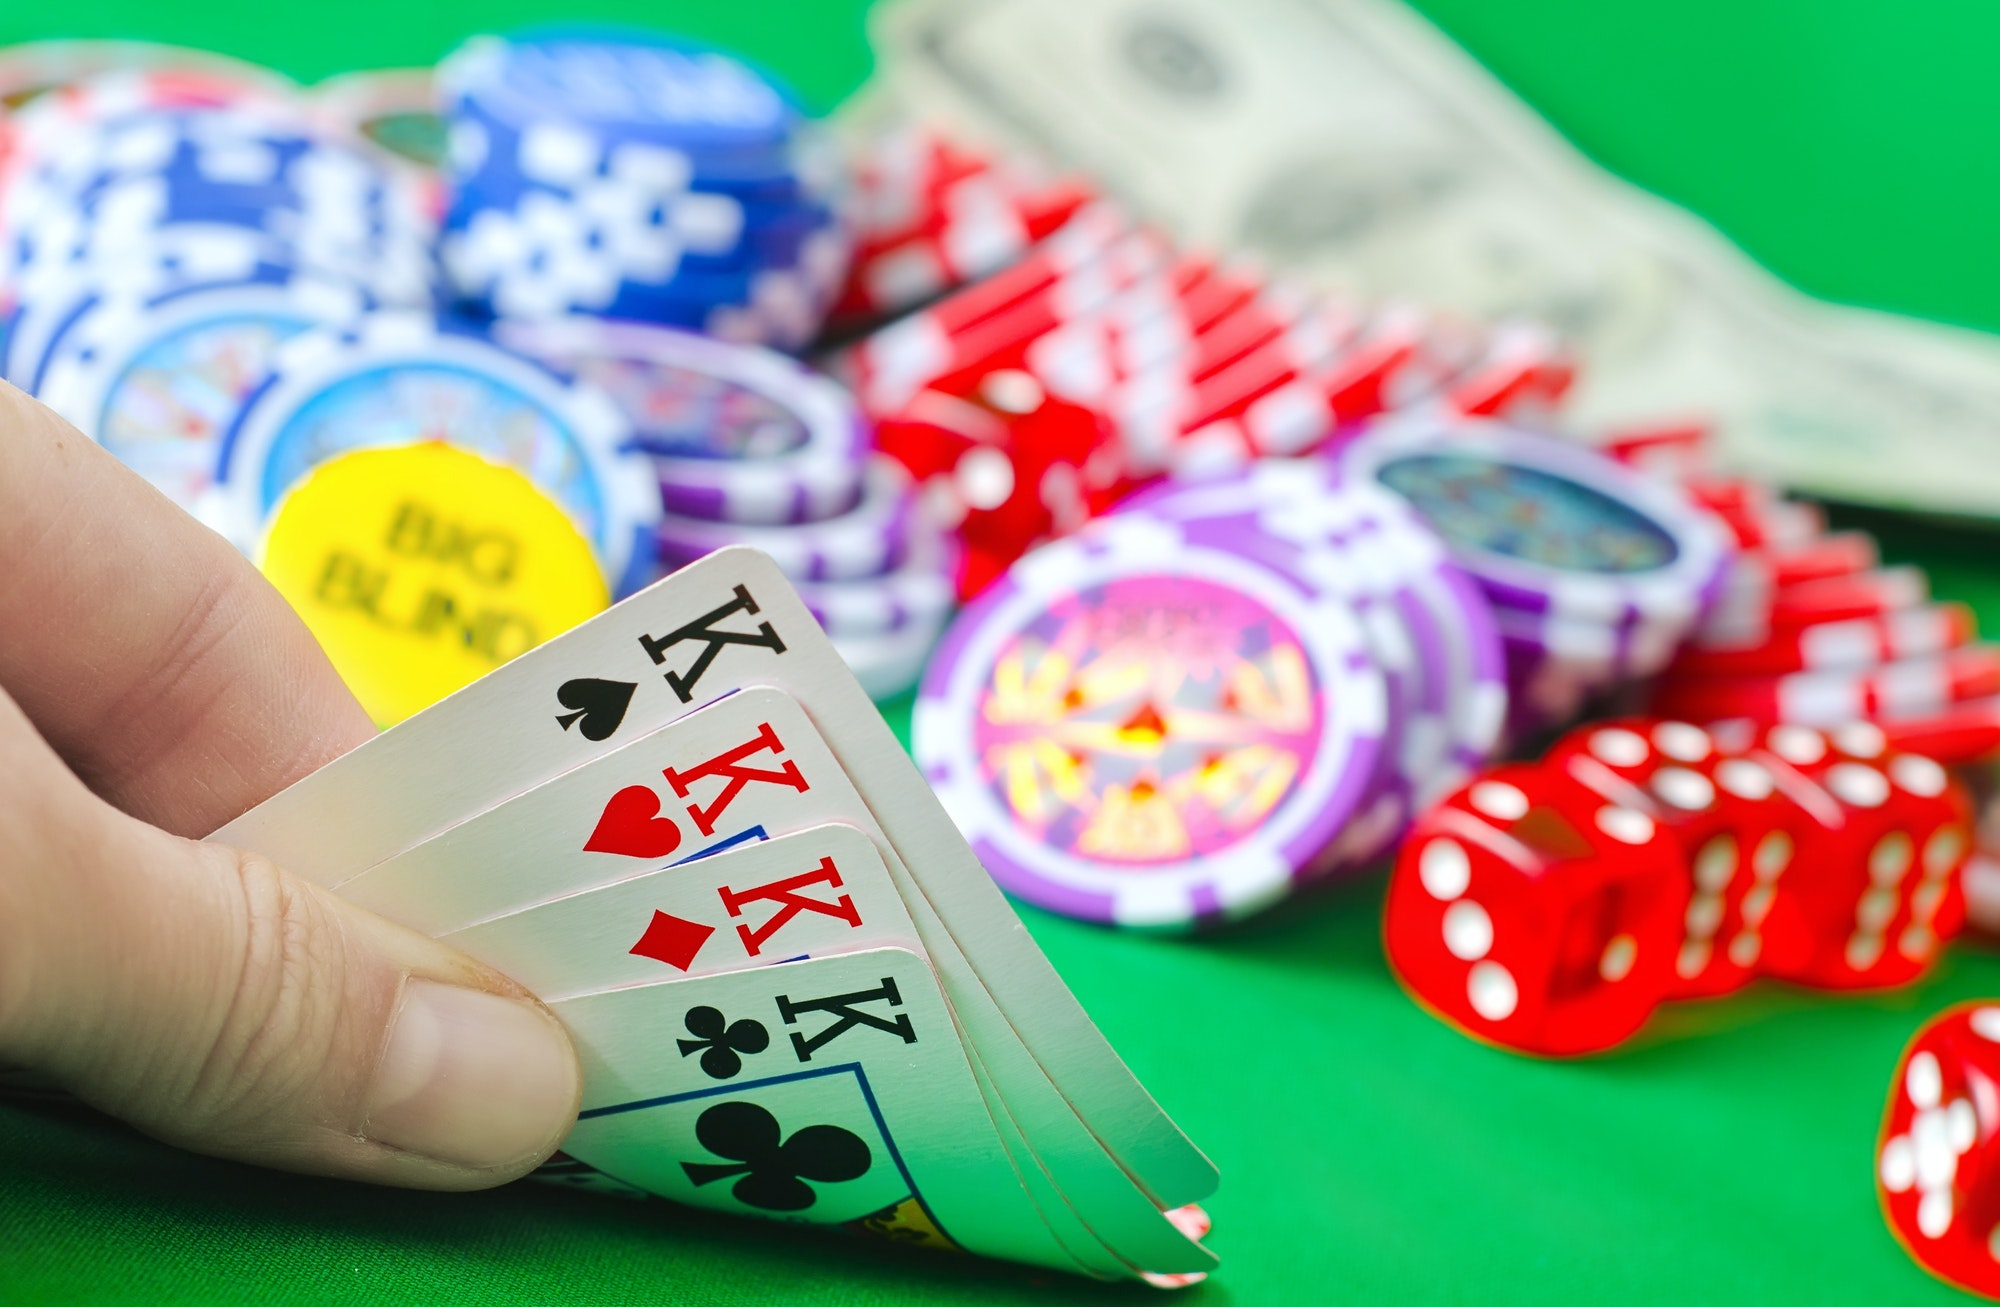 Card for poker in the hand, chips and card for poker